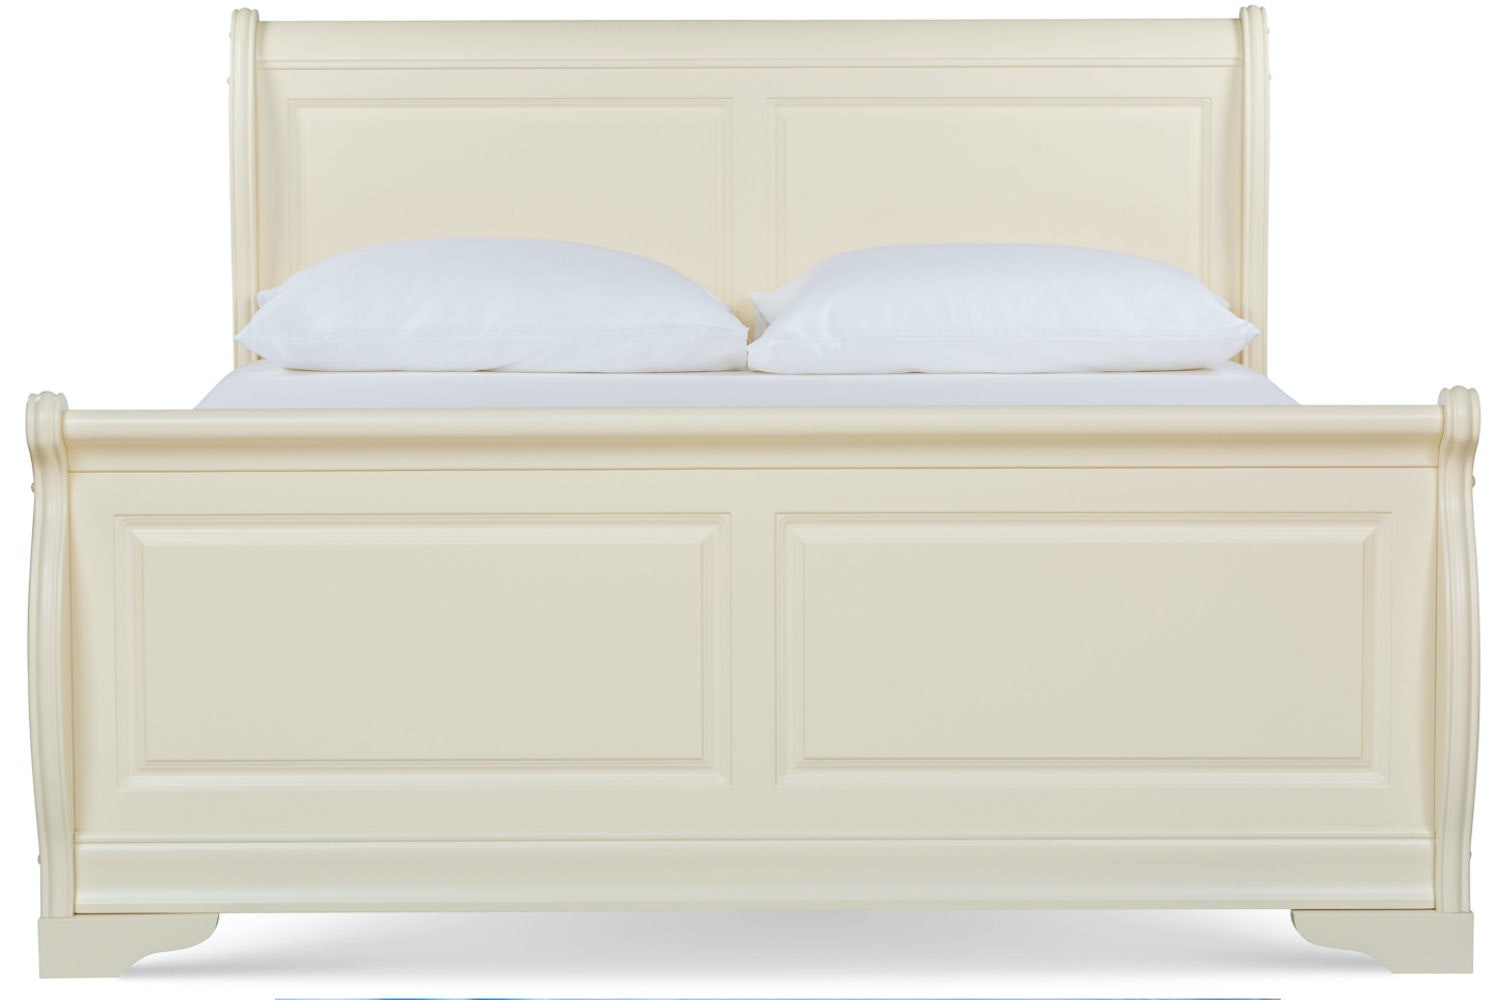 chardonnay-double-bed-frame-4ft6-cream